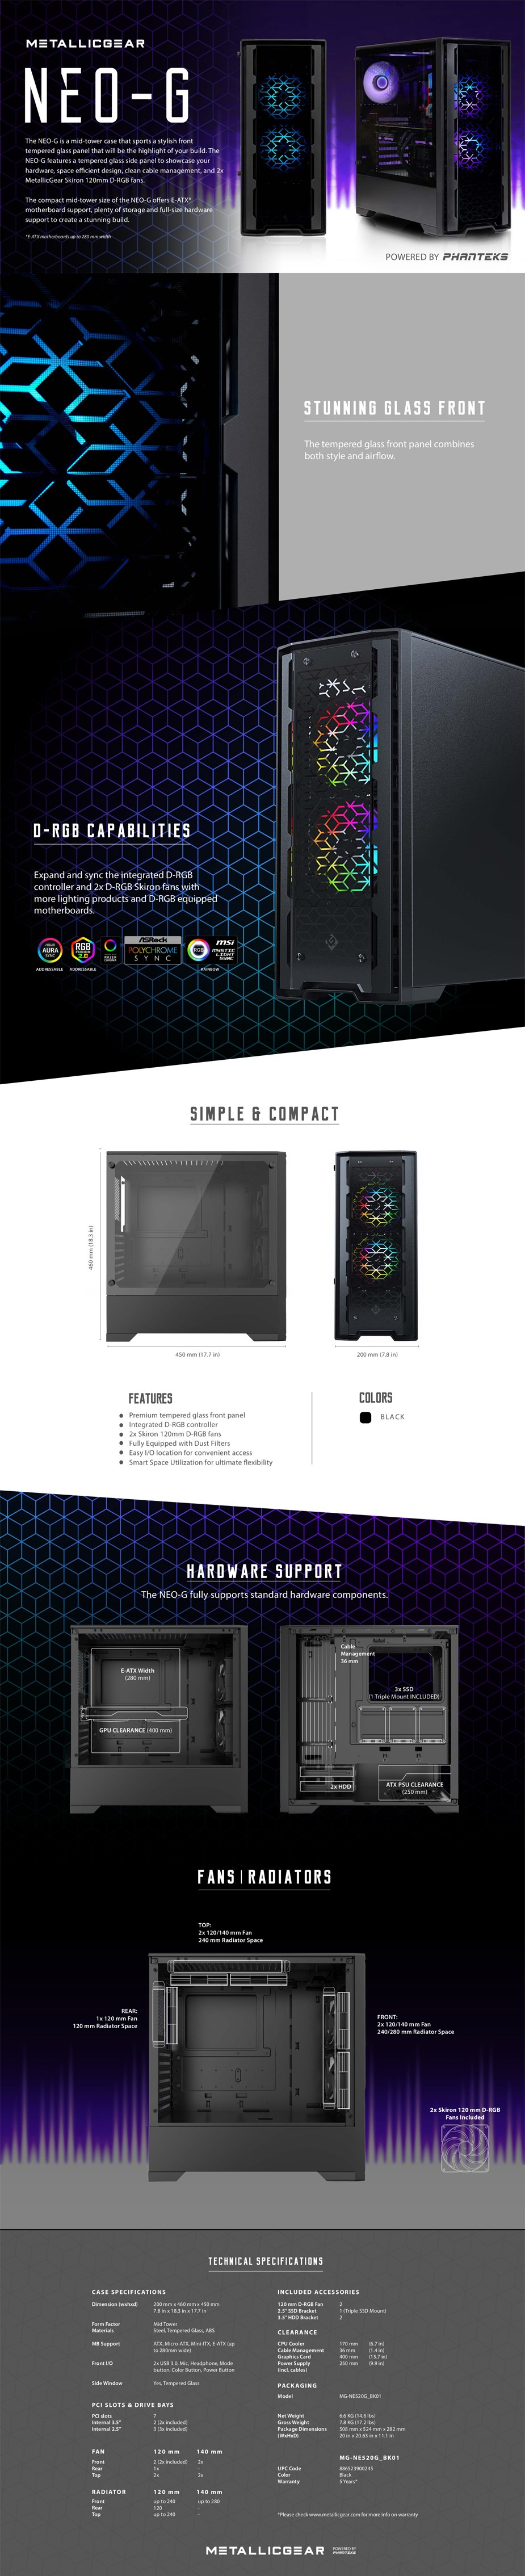 MetallicGear Neo G RGB Tempered Glass Mid-Tower E-ATX Case - Black - Overview 1